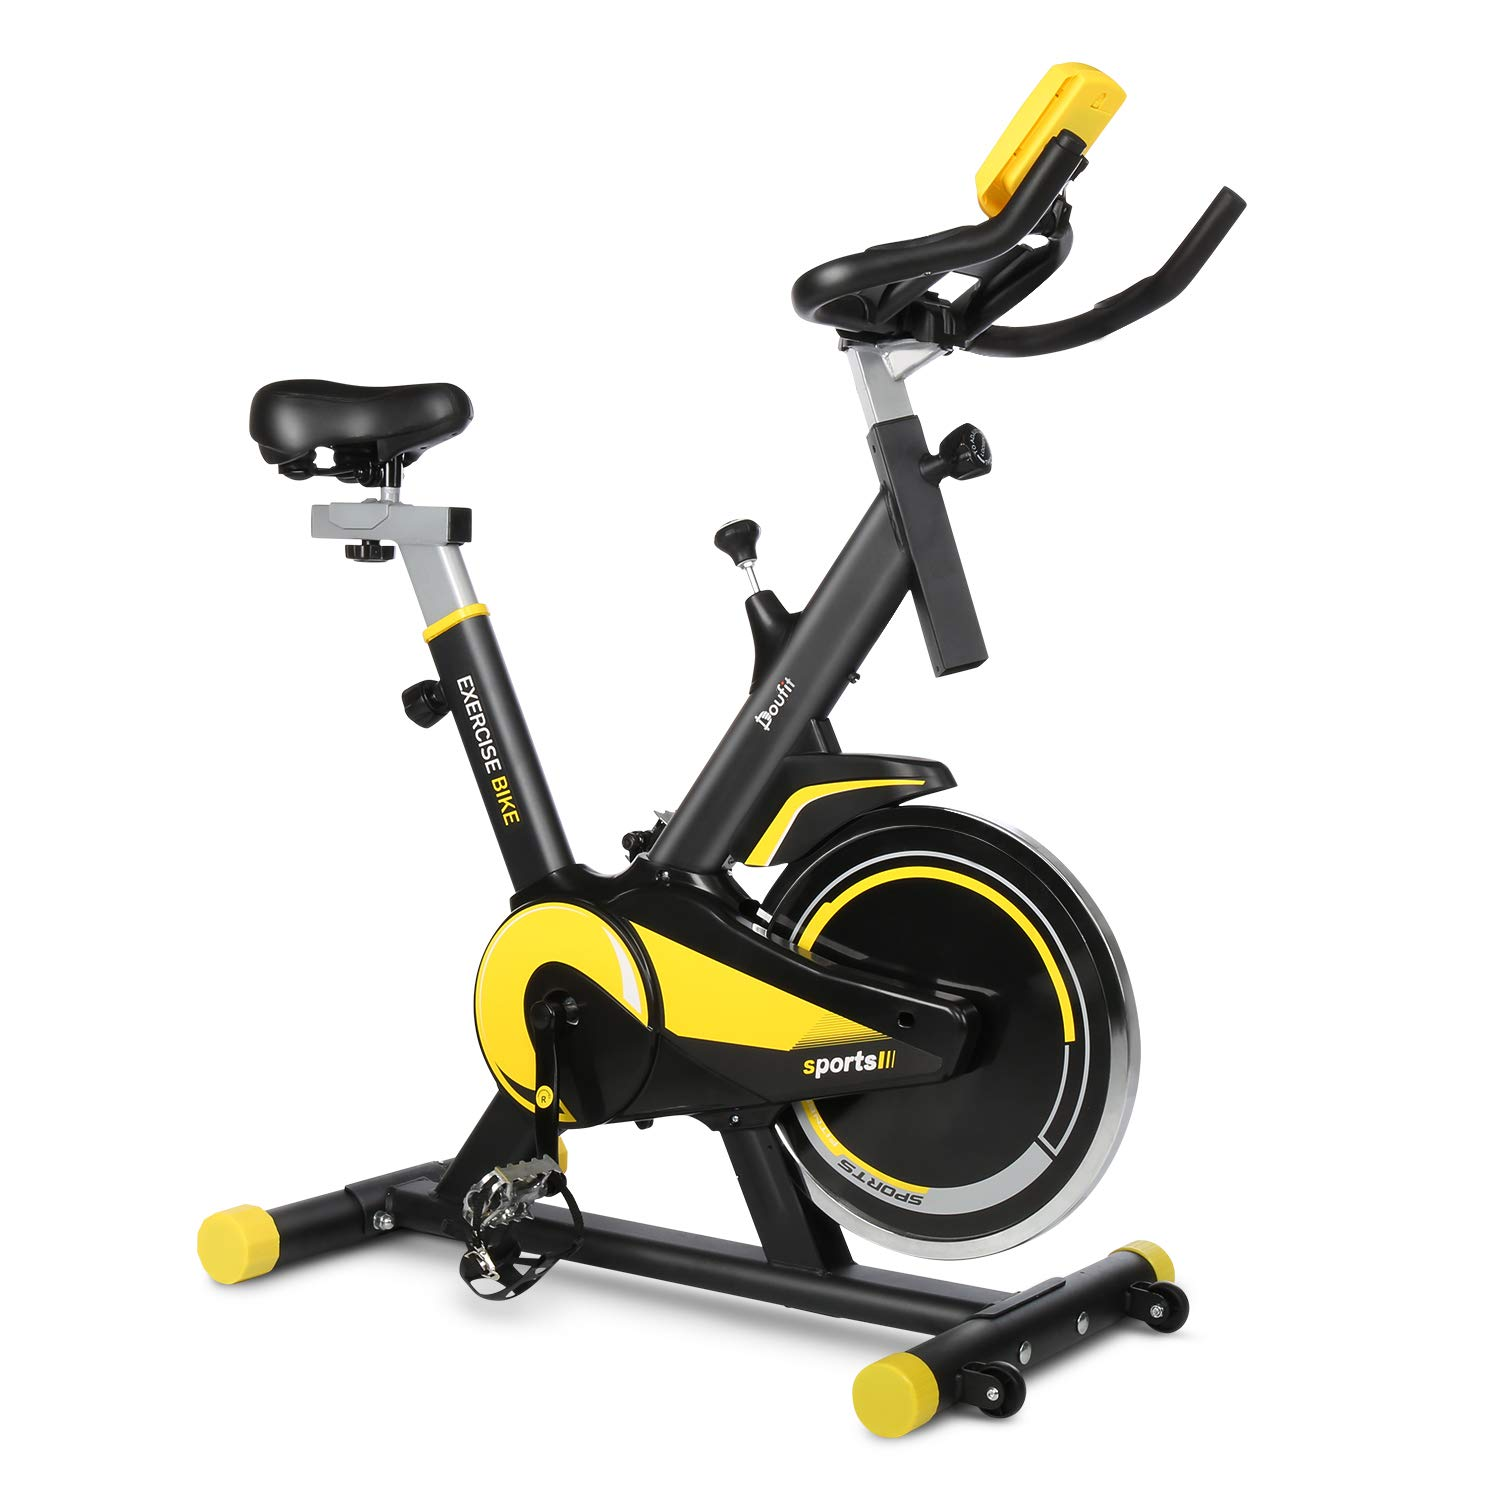 Permalink to Doufit Indoor Cycling Exercise Bike Weight Loss Machine Aerobic 13KG Flywheel Home Gym Fitness Equipment Max Weight 264 Lbs